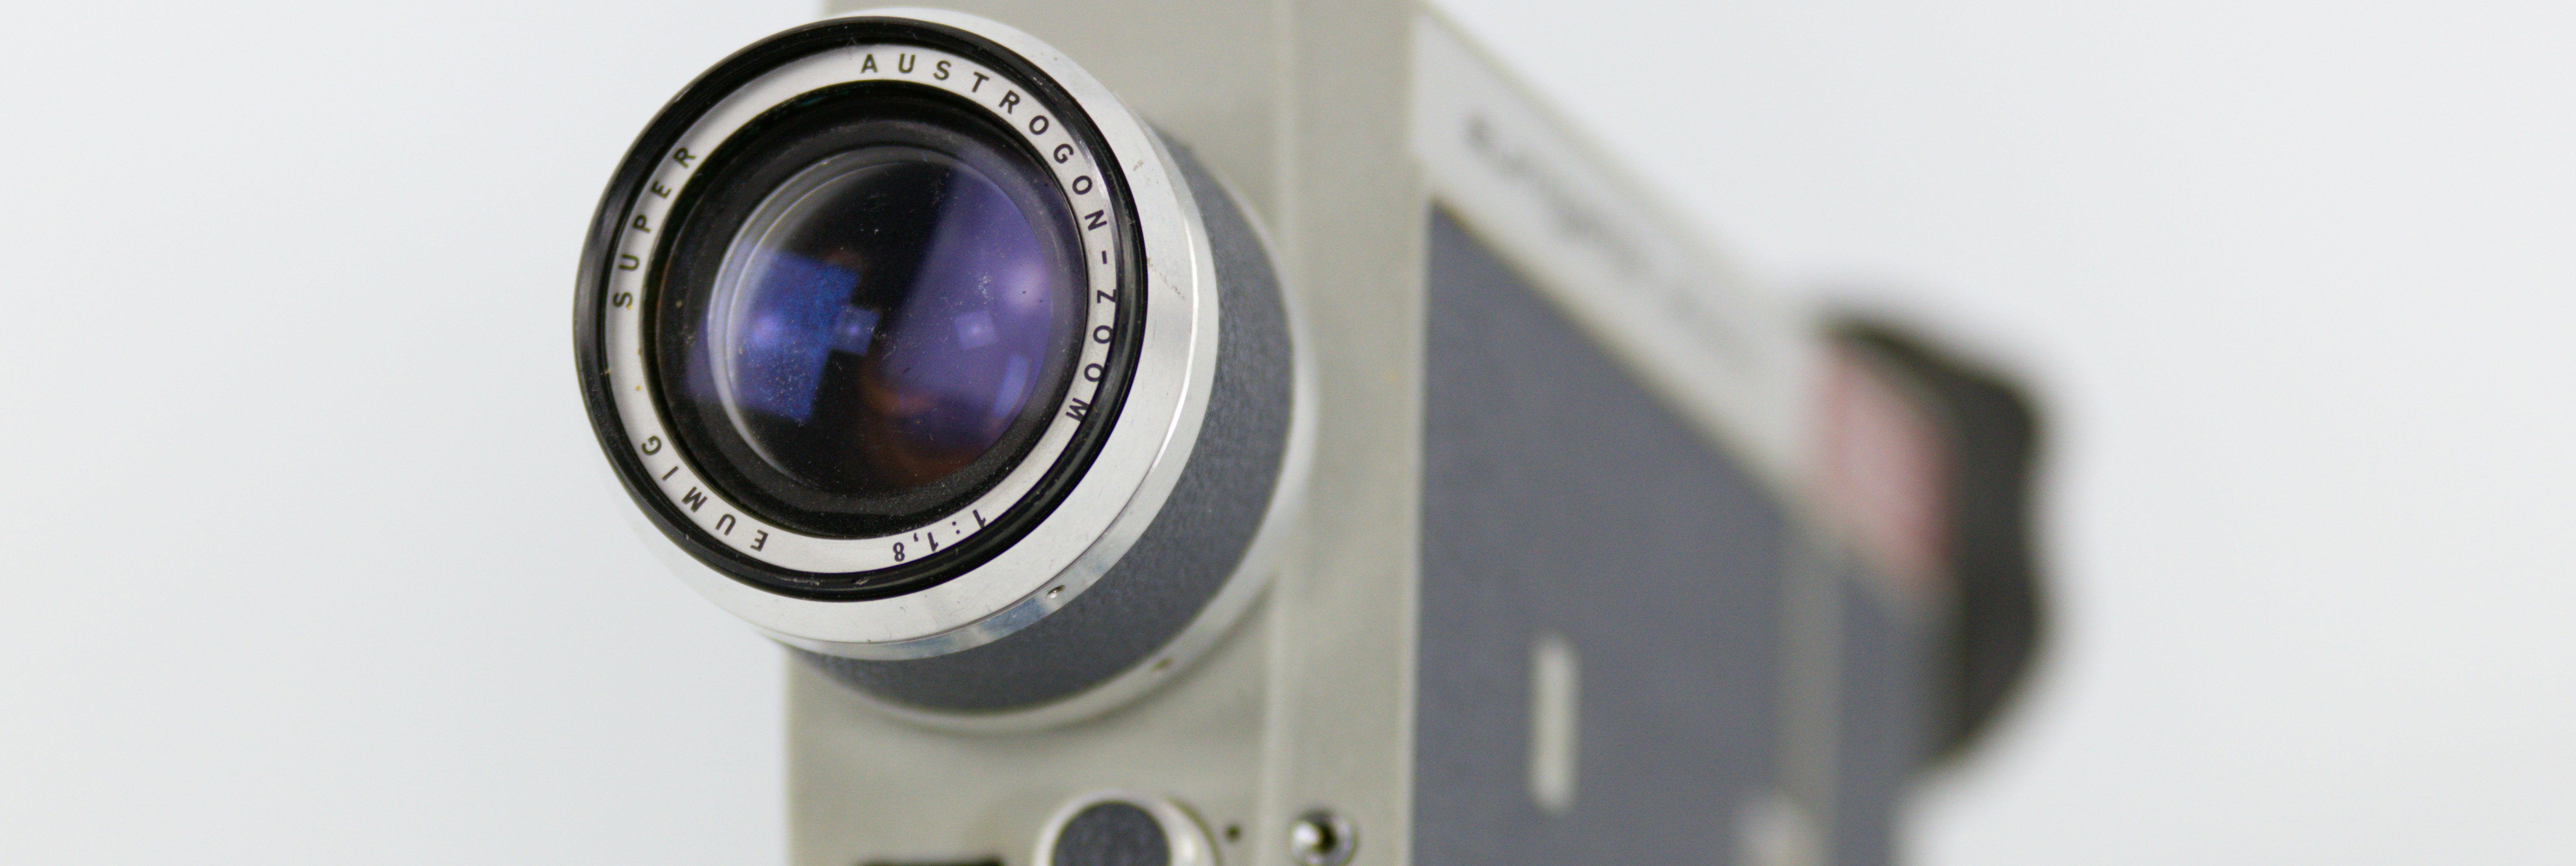 close up of an old fashioned video camera against a white background